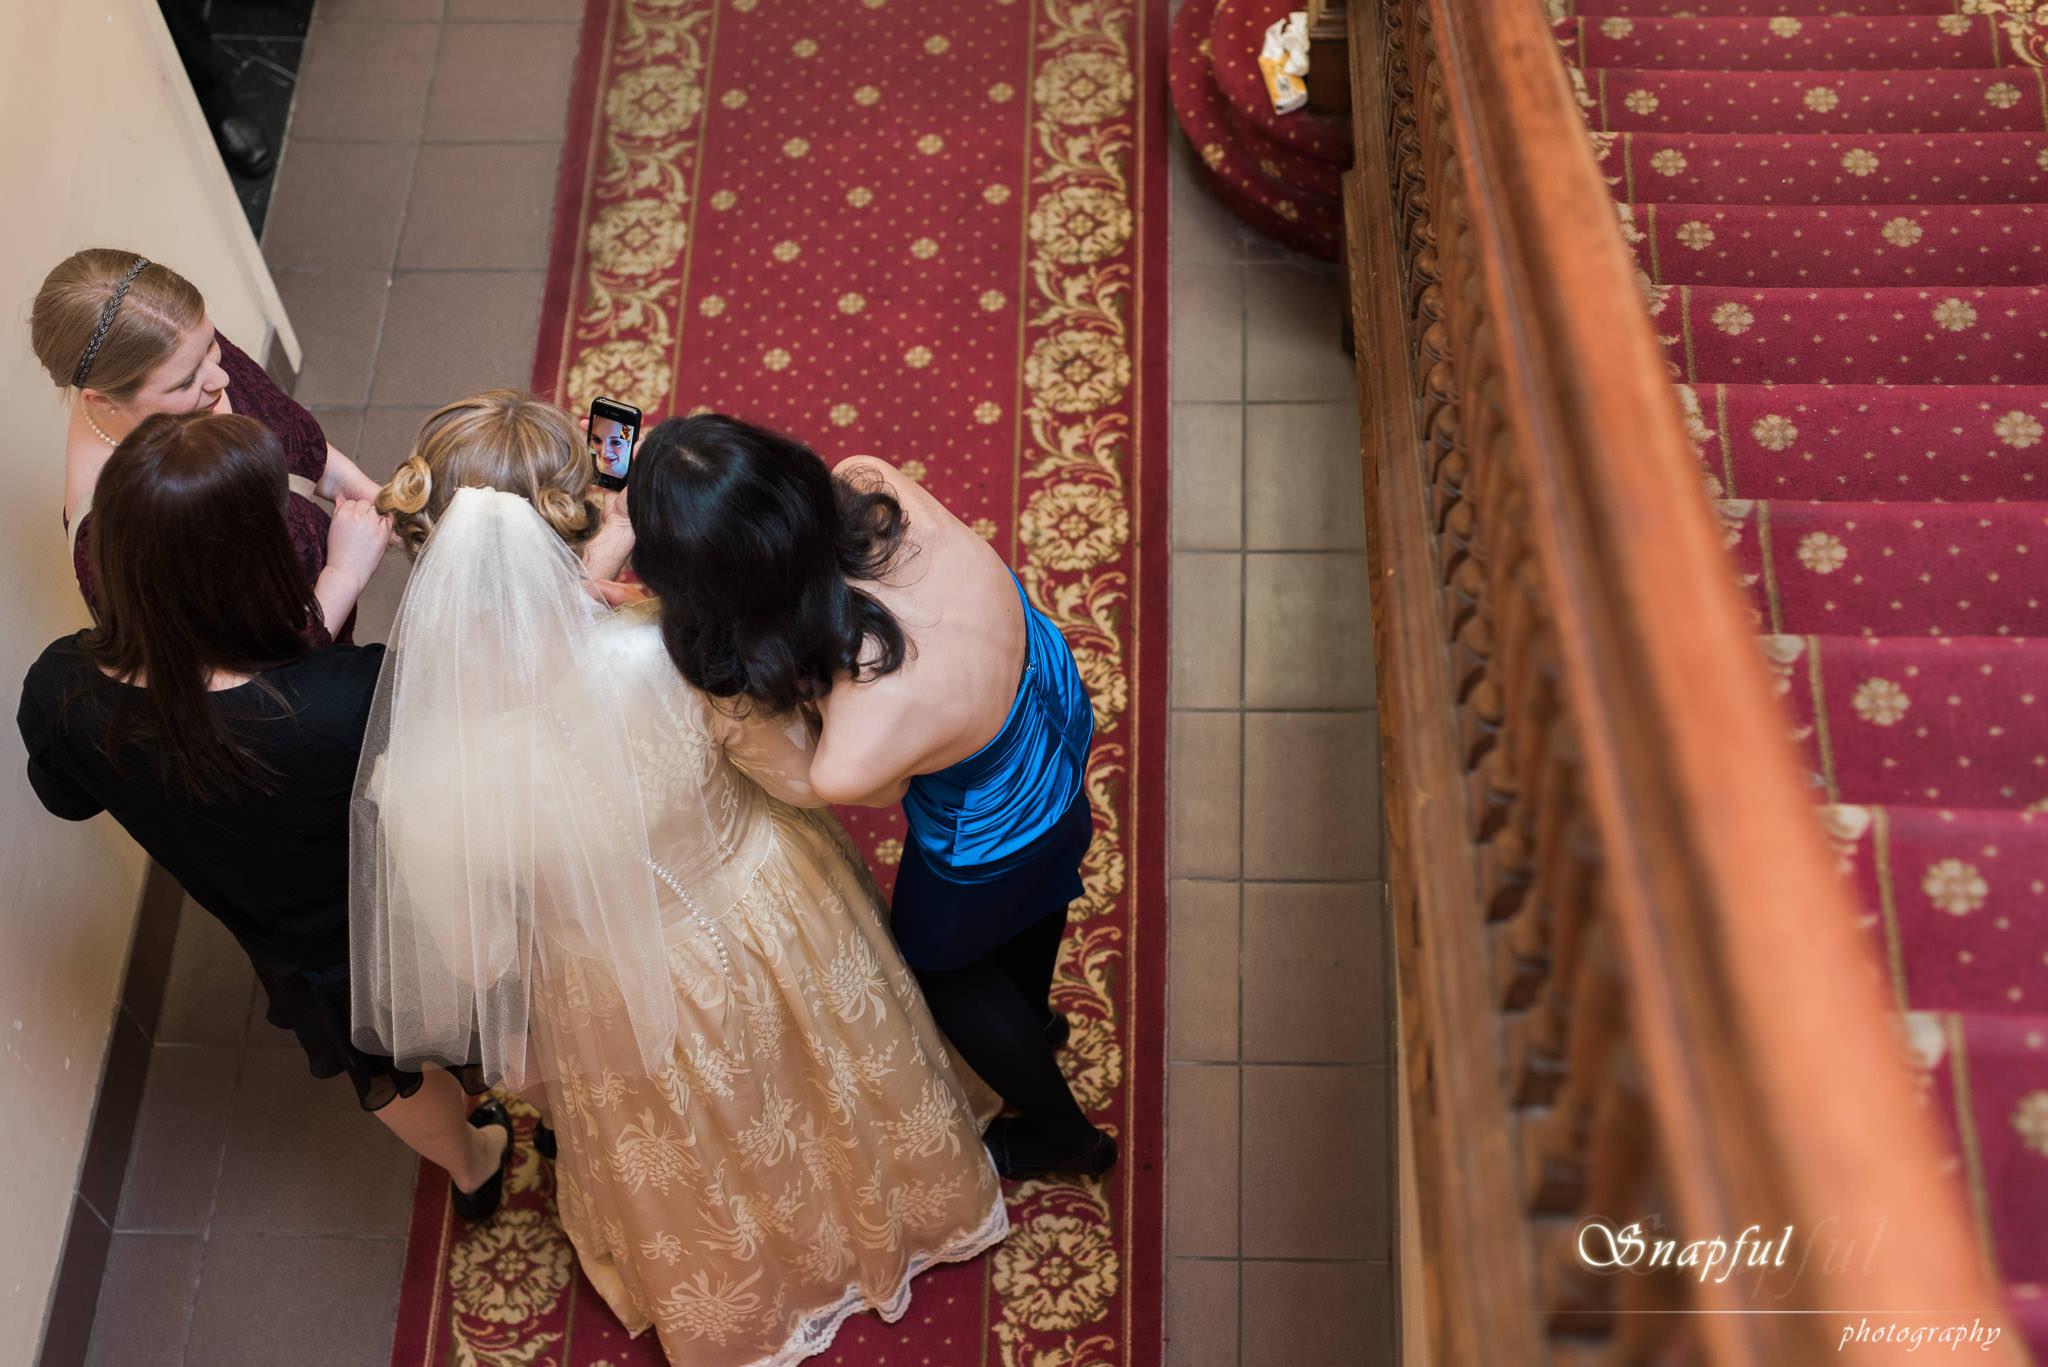 Bride sharing a moment with her bridesmaids